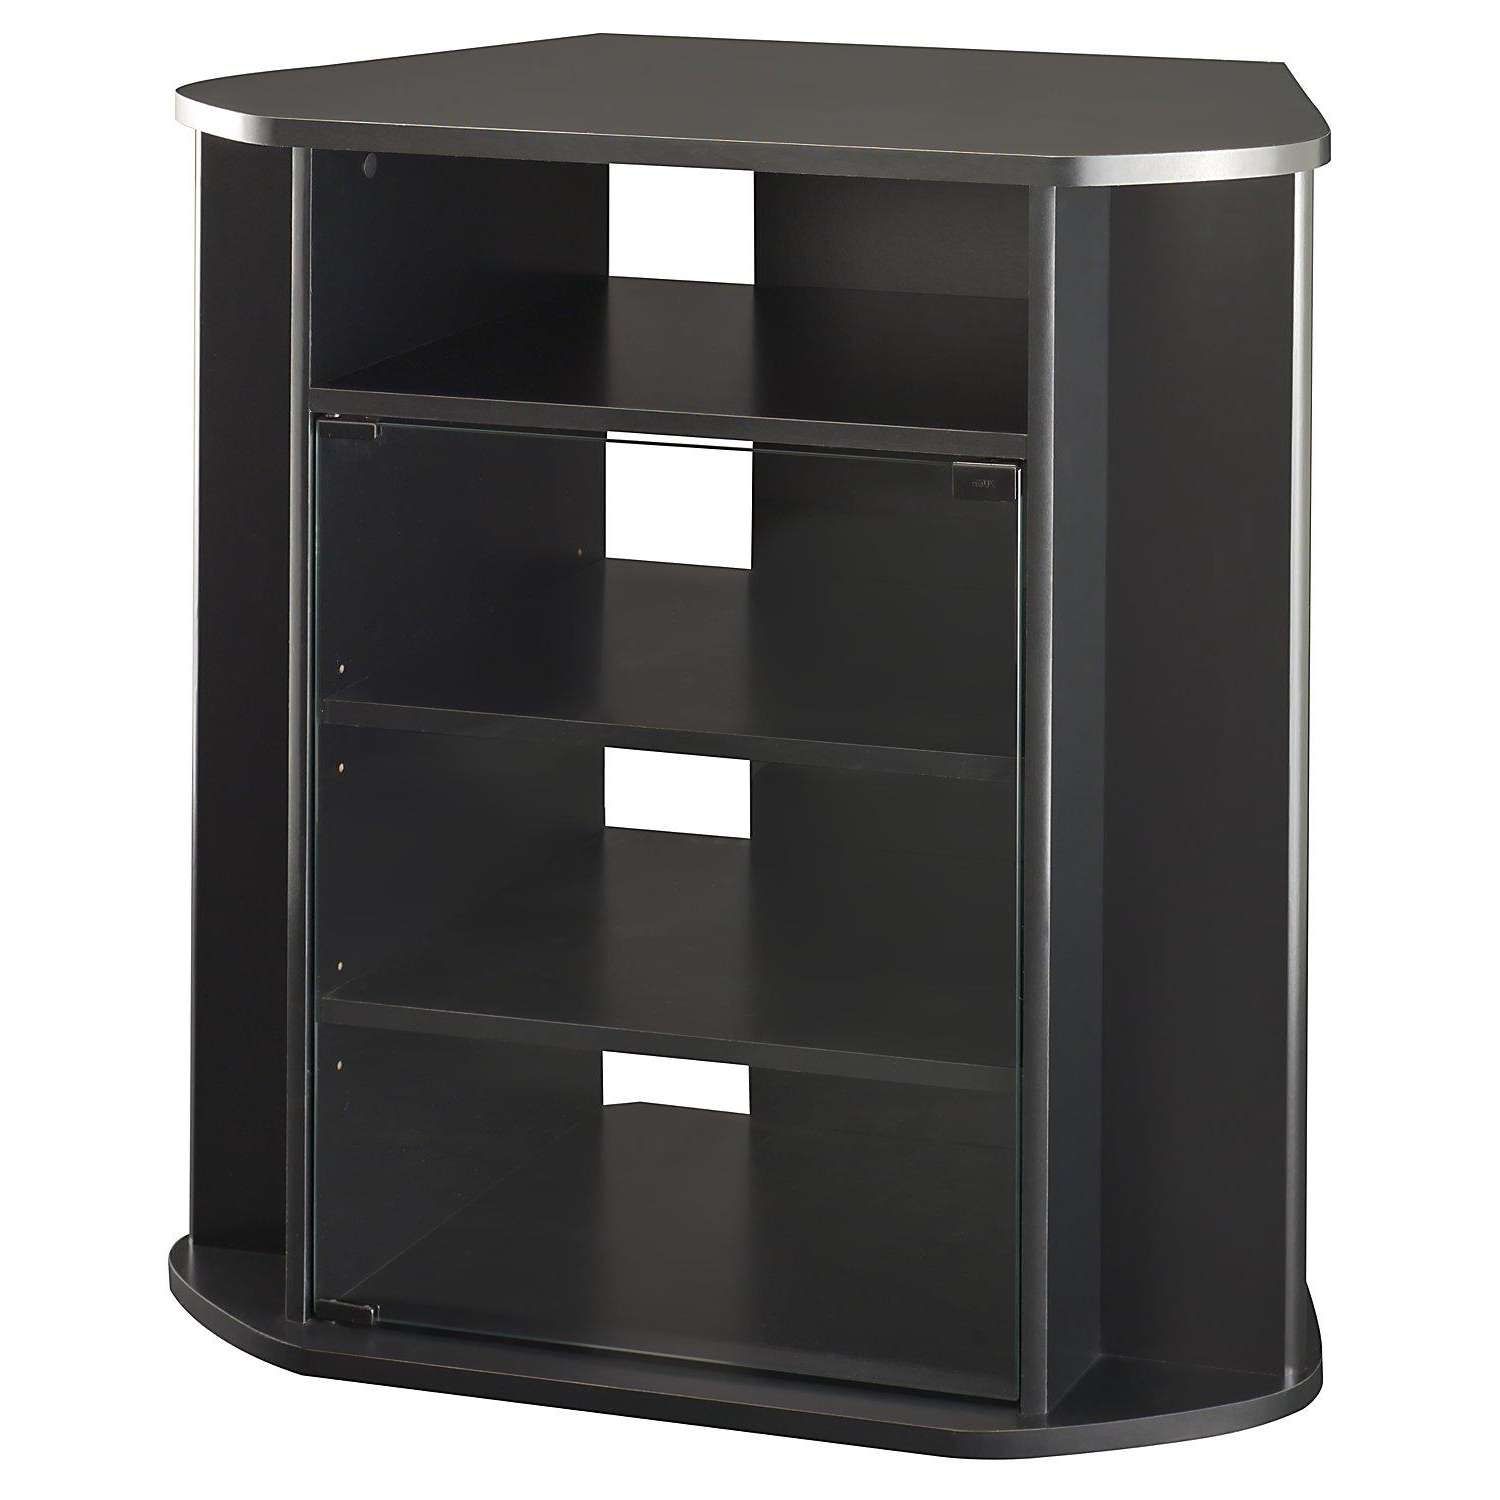 Tall Corner Tv Stand With Glass Door Cabinet In Black Color With Corner Tv Cabinets With Glass Doors (View 14 of 20)